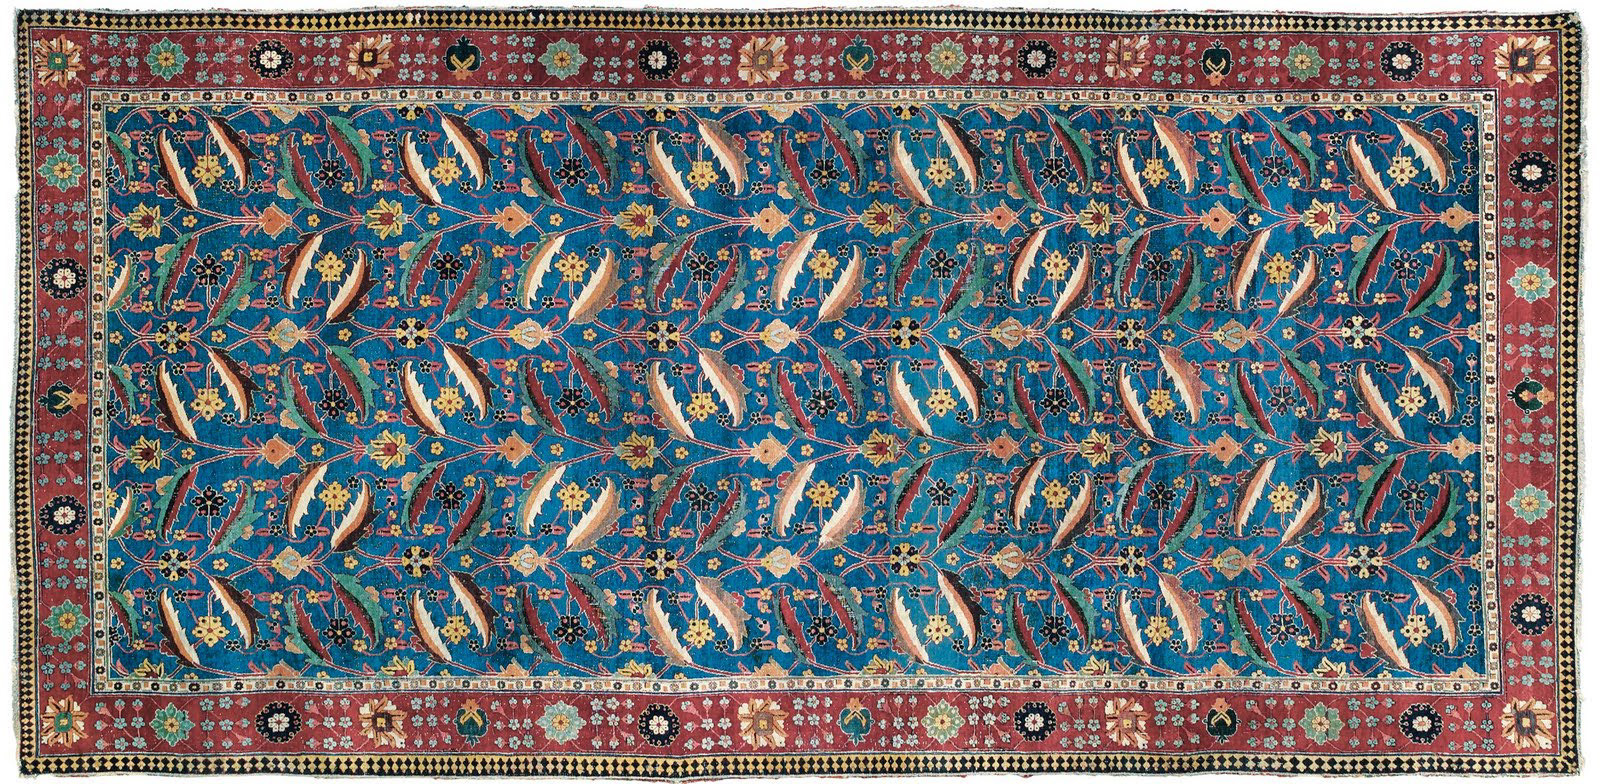 Persian Rugs Archives Rug Blog By Doris Leslie Blau